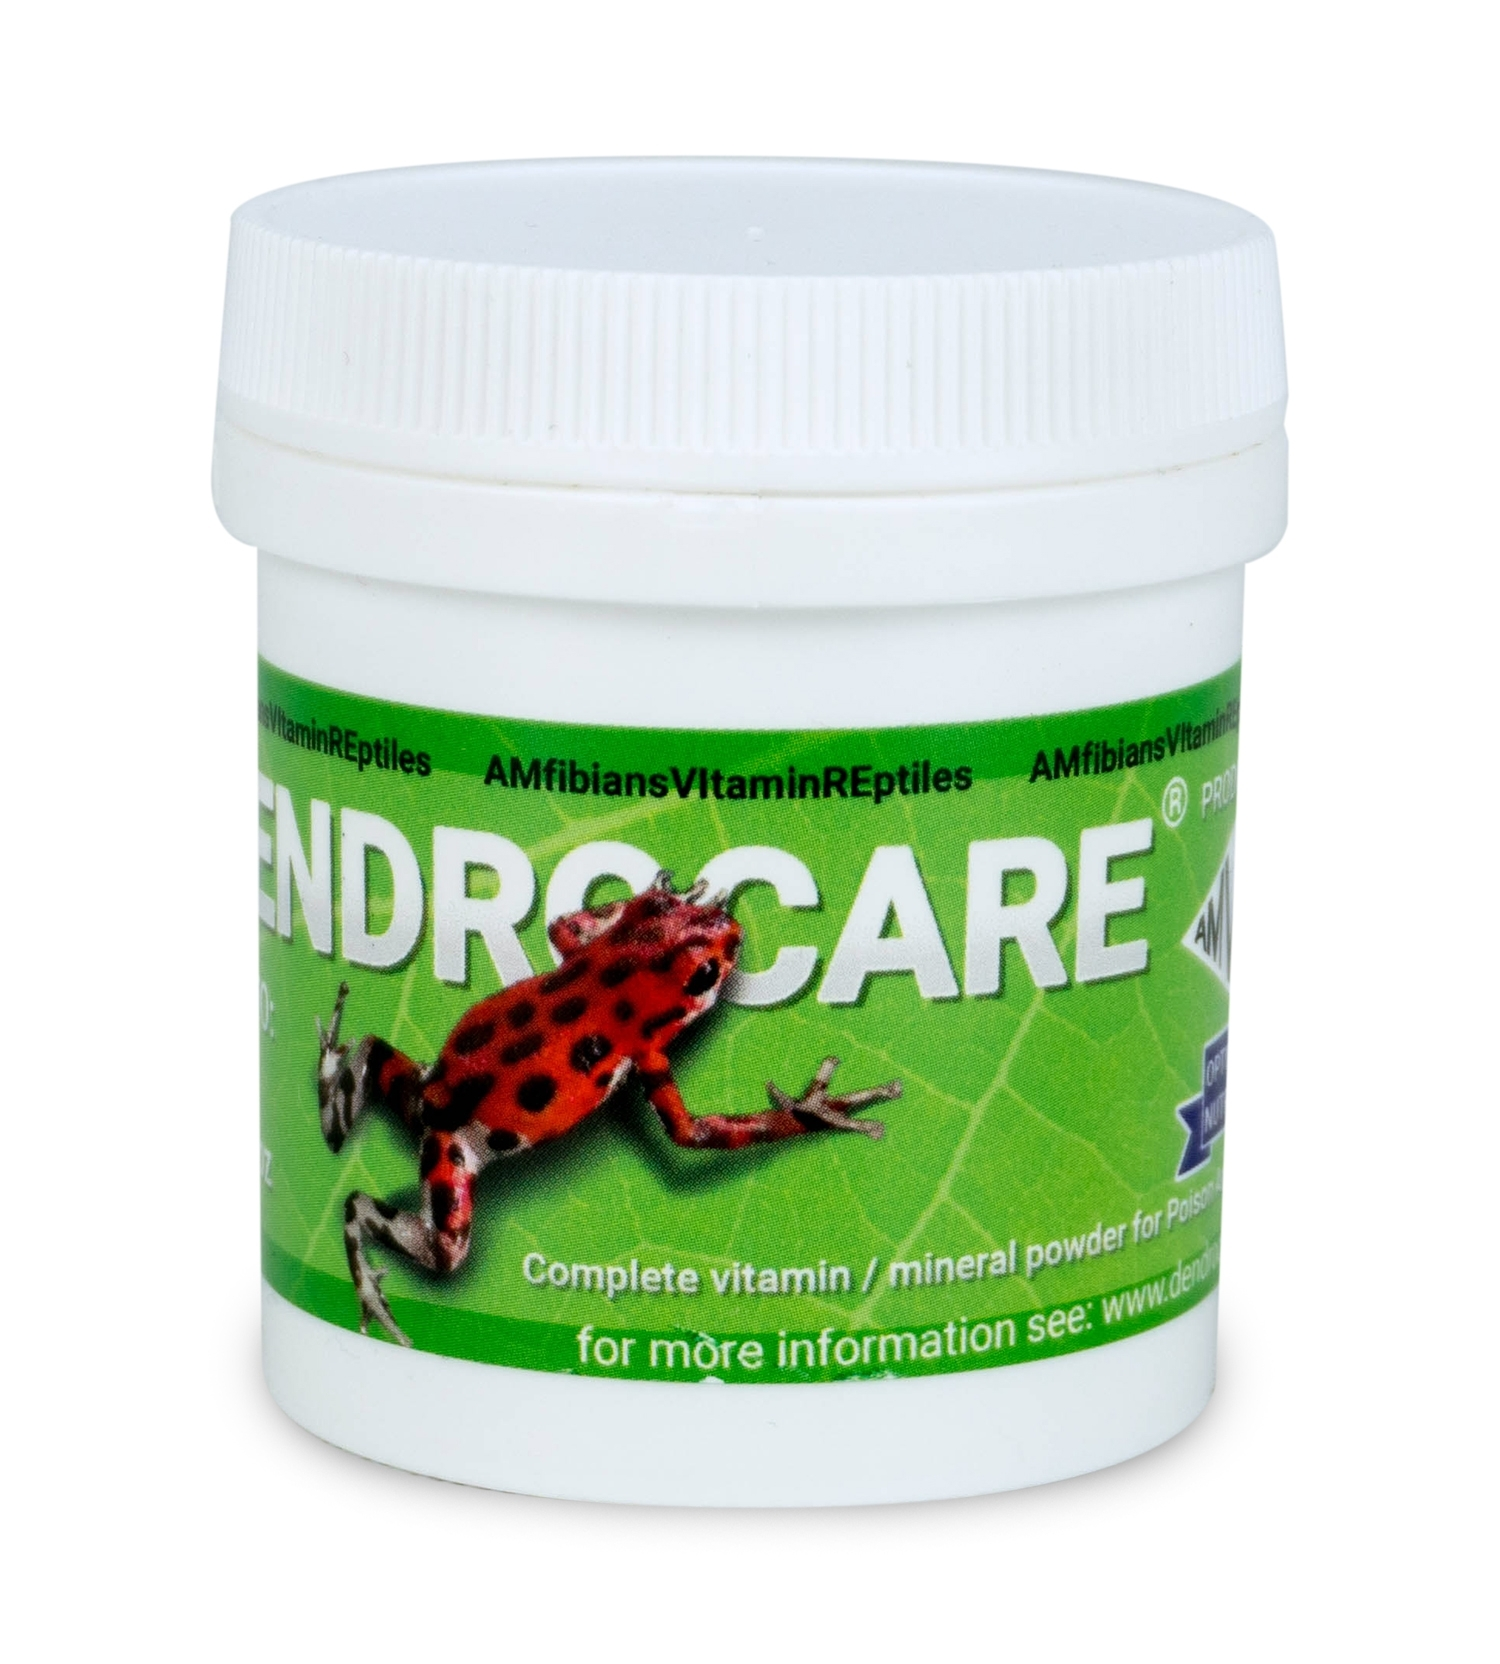 Dendrocare Vitamin & Mineral Supplement  - 50 gram